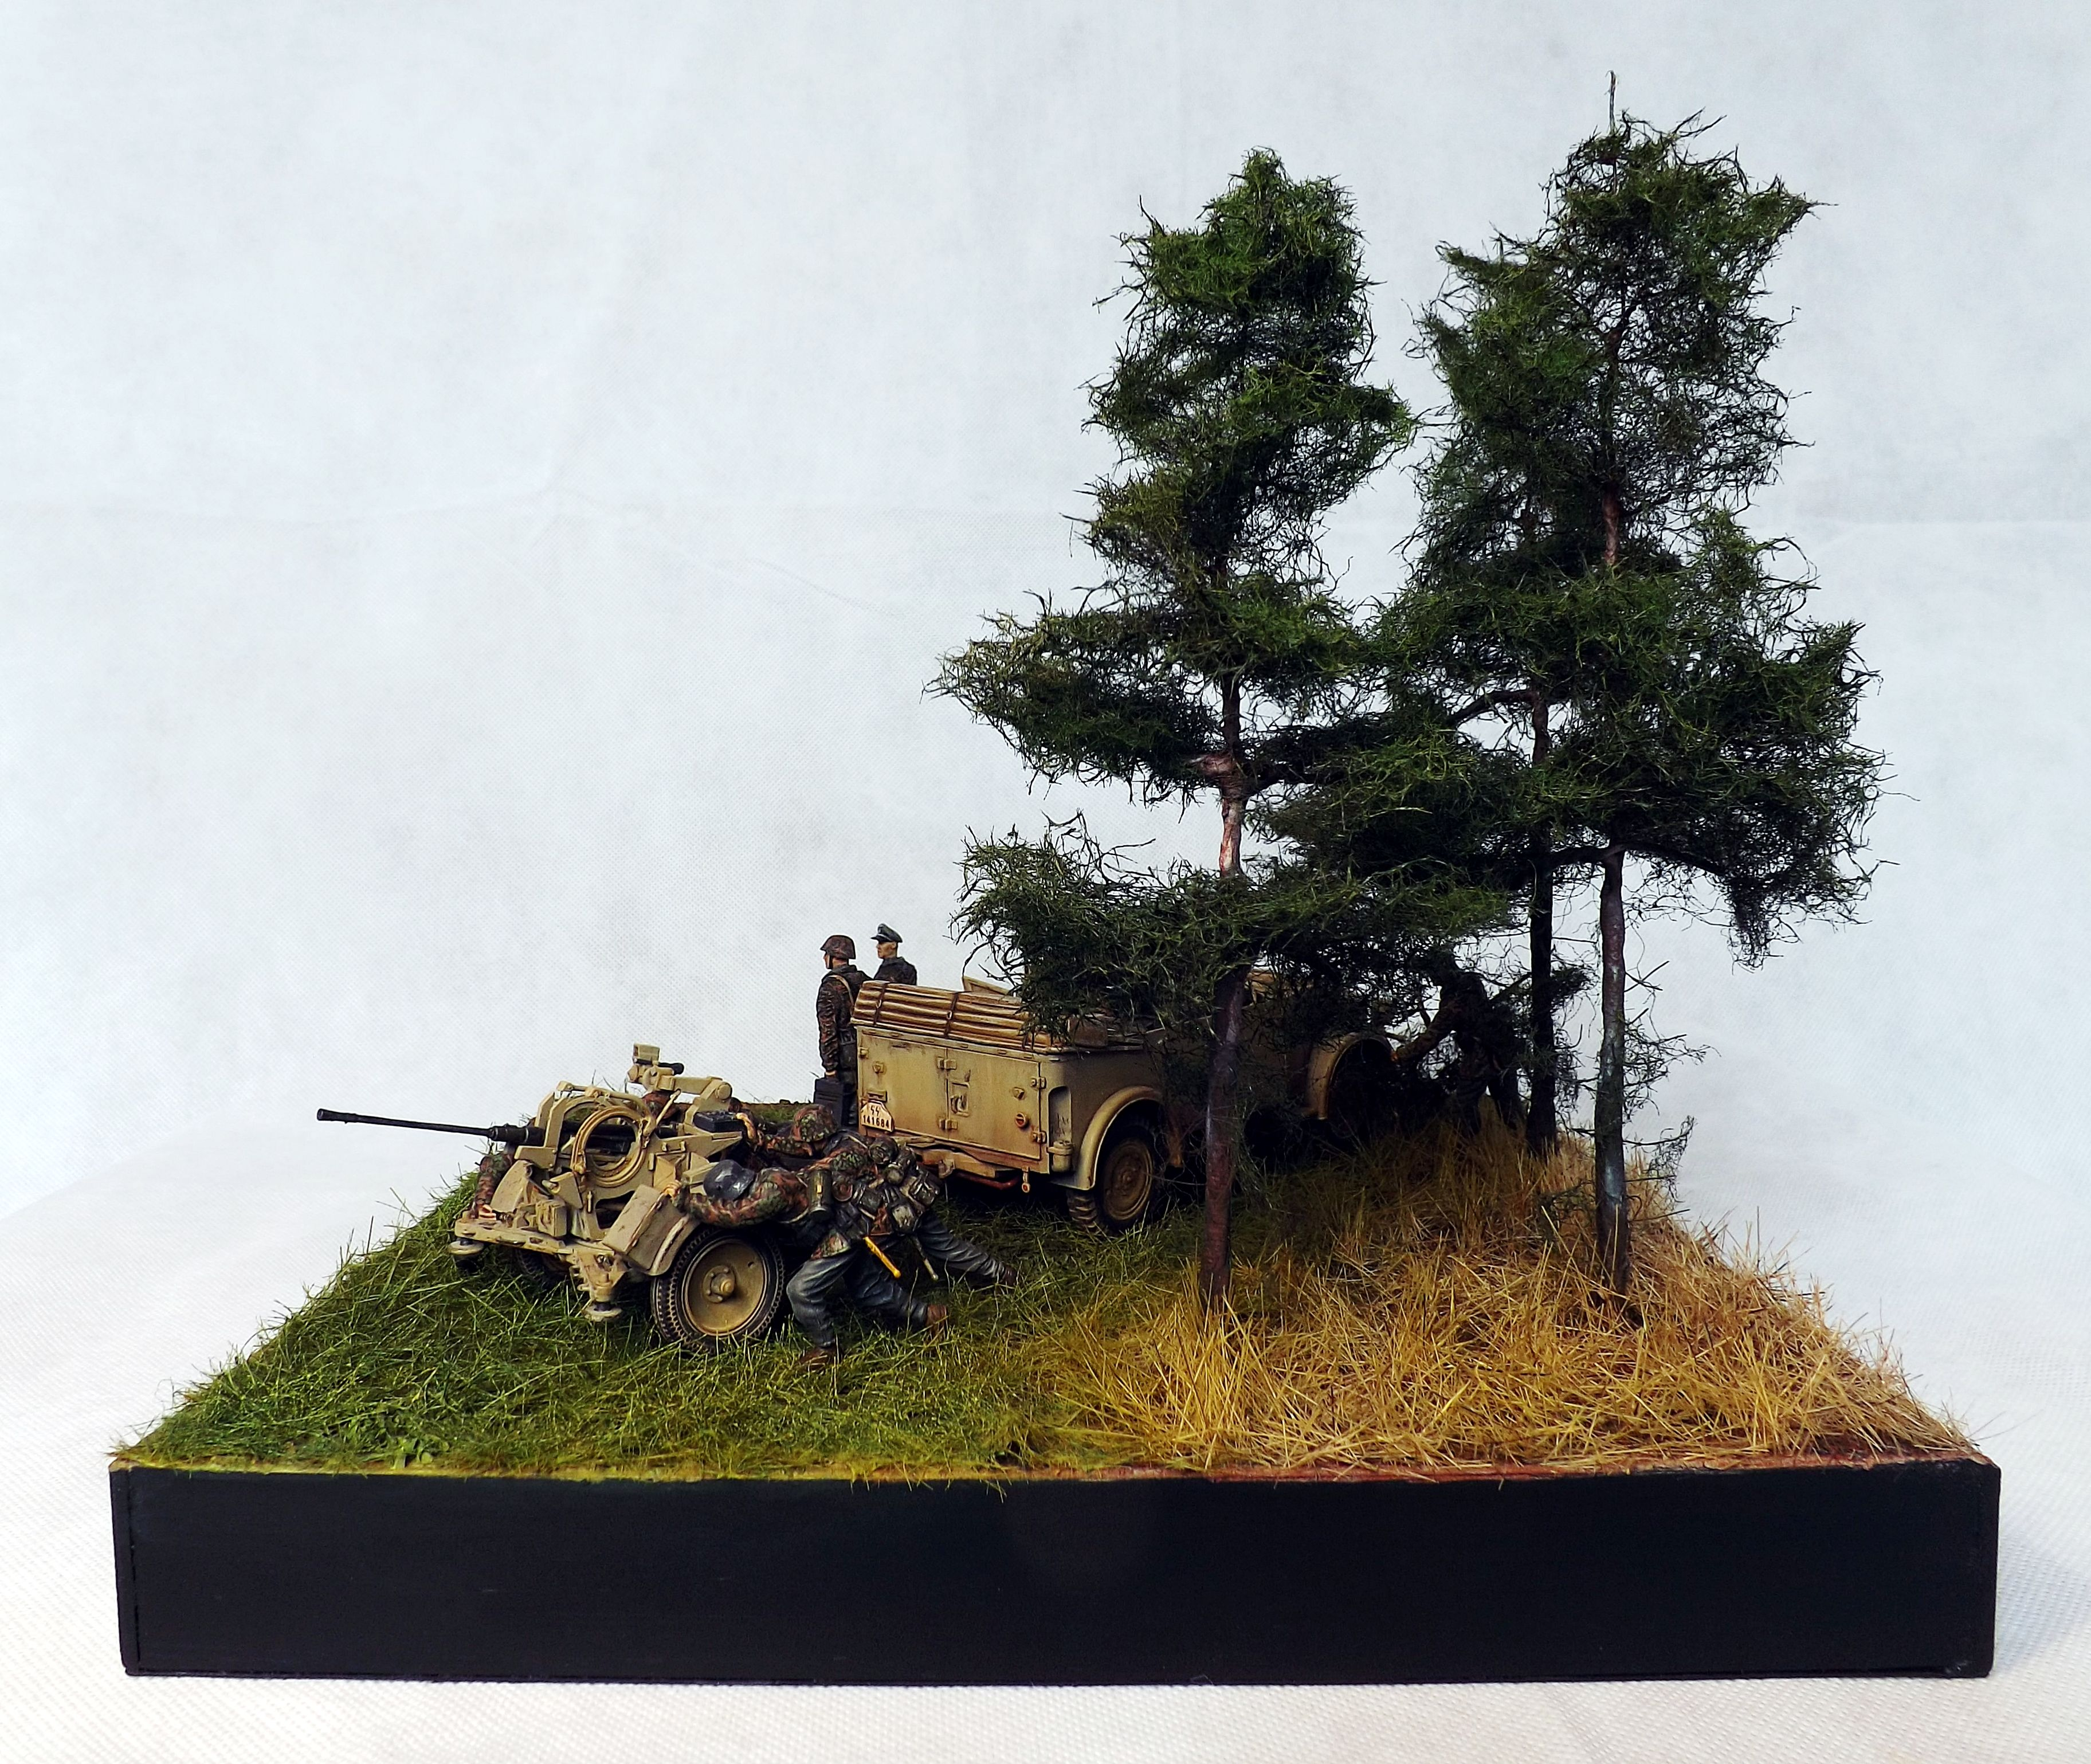 Somewhere In Russia 1943 1 35 Scale Diorama By Terence Young Military Diorama Diorama Scenery